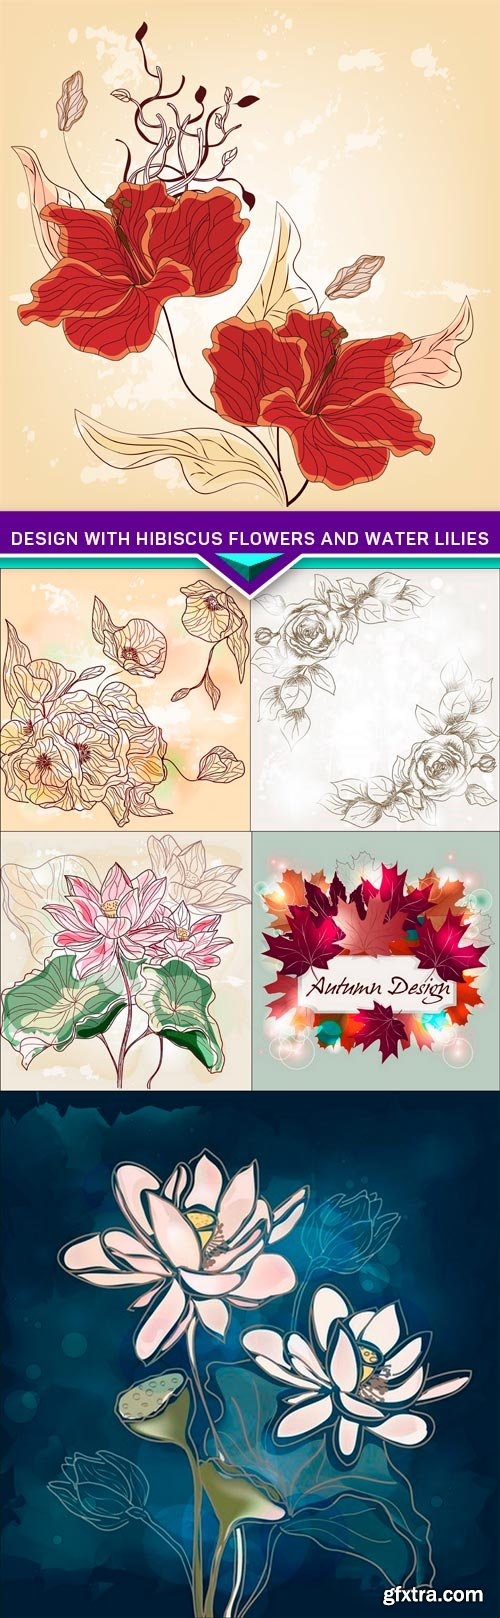 Design with hibiscus flowers and water lilies 6X EPS